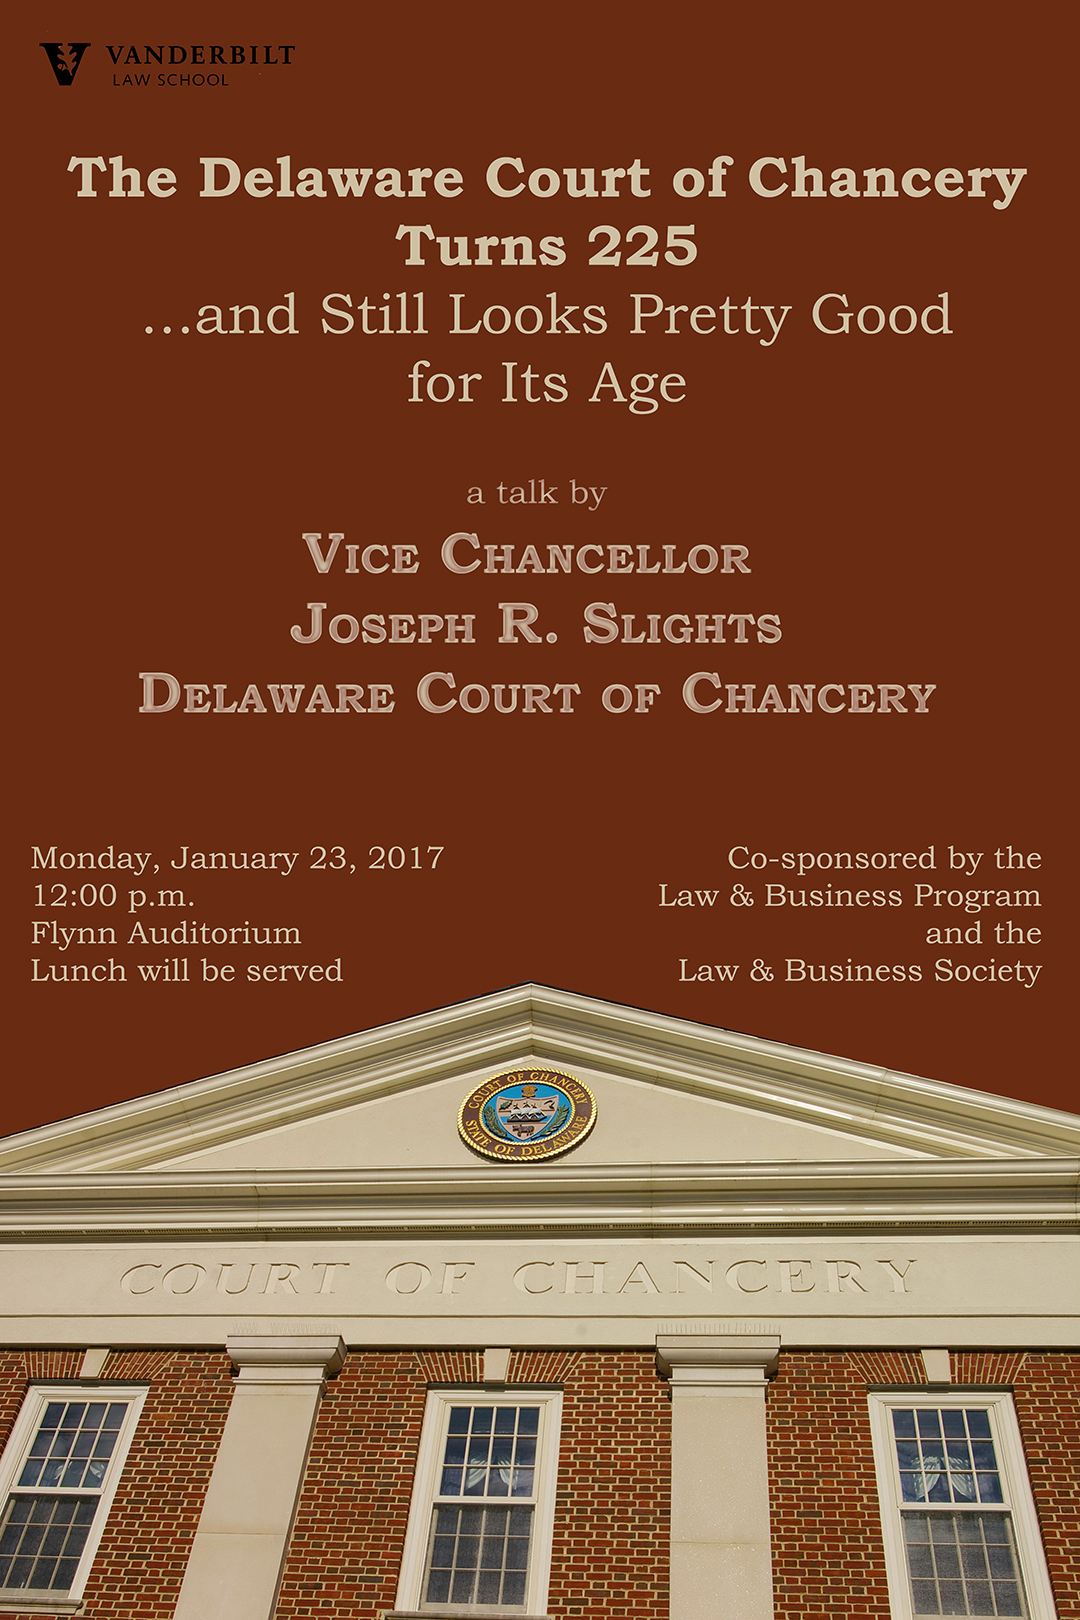 The Delaware Court of Chancery turns 225...and still looks pretty good for its age